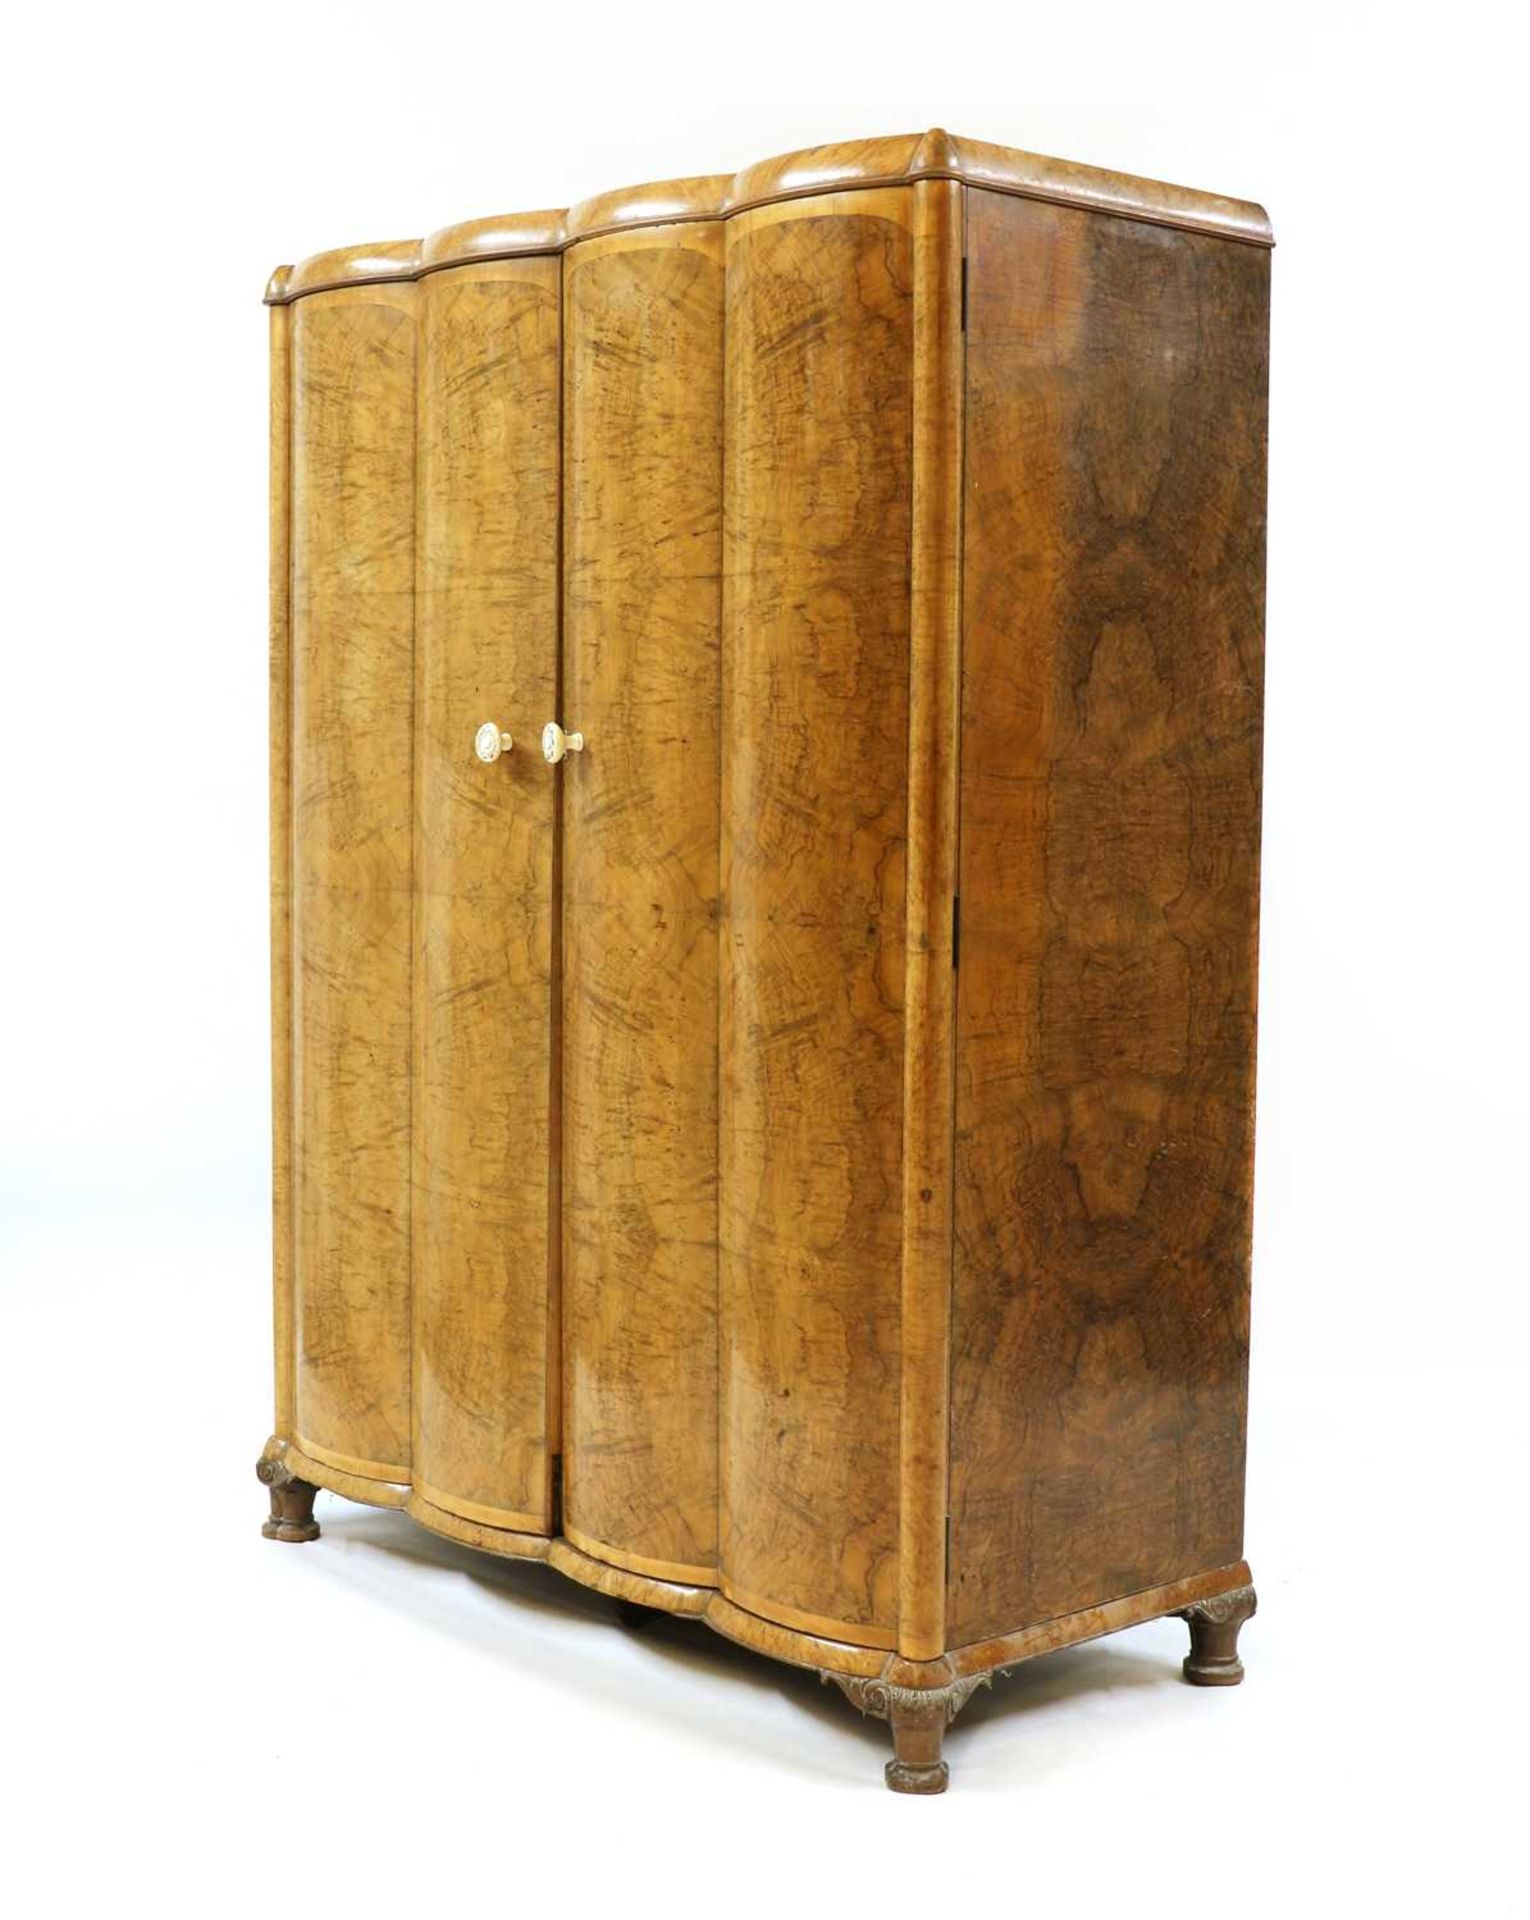 An Art Deco burr walnut and maple bedroom suite, - Image 15 of 45